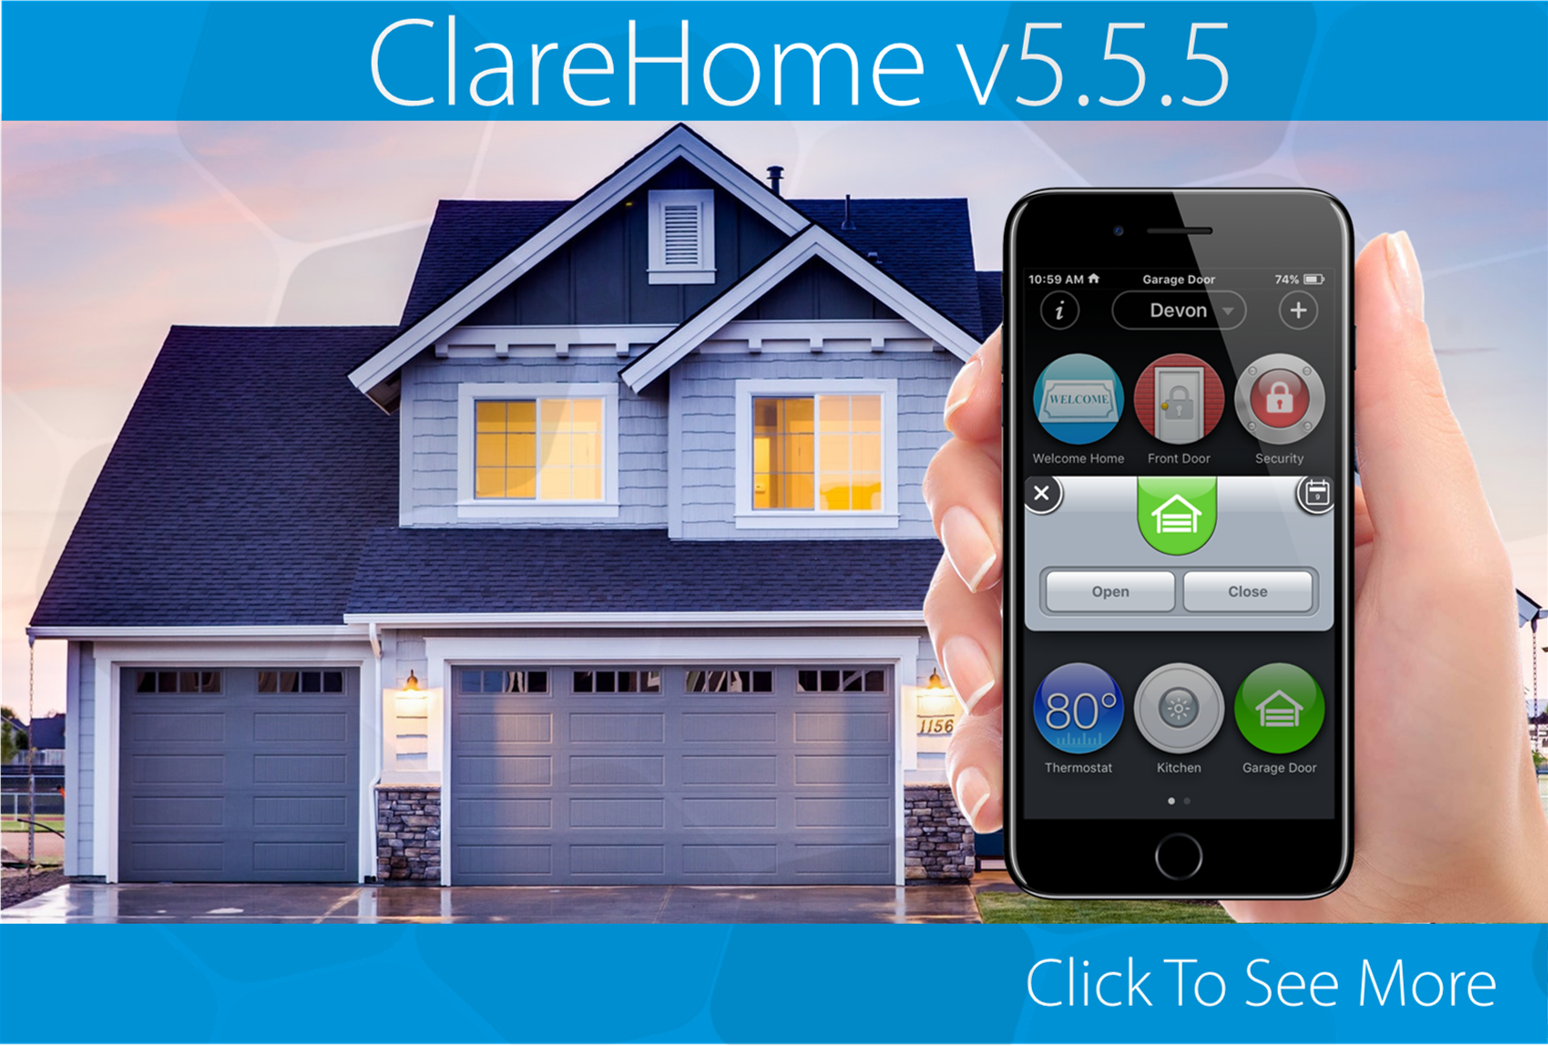 Announcing ClareHome v5.5.5